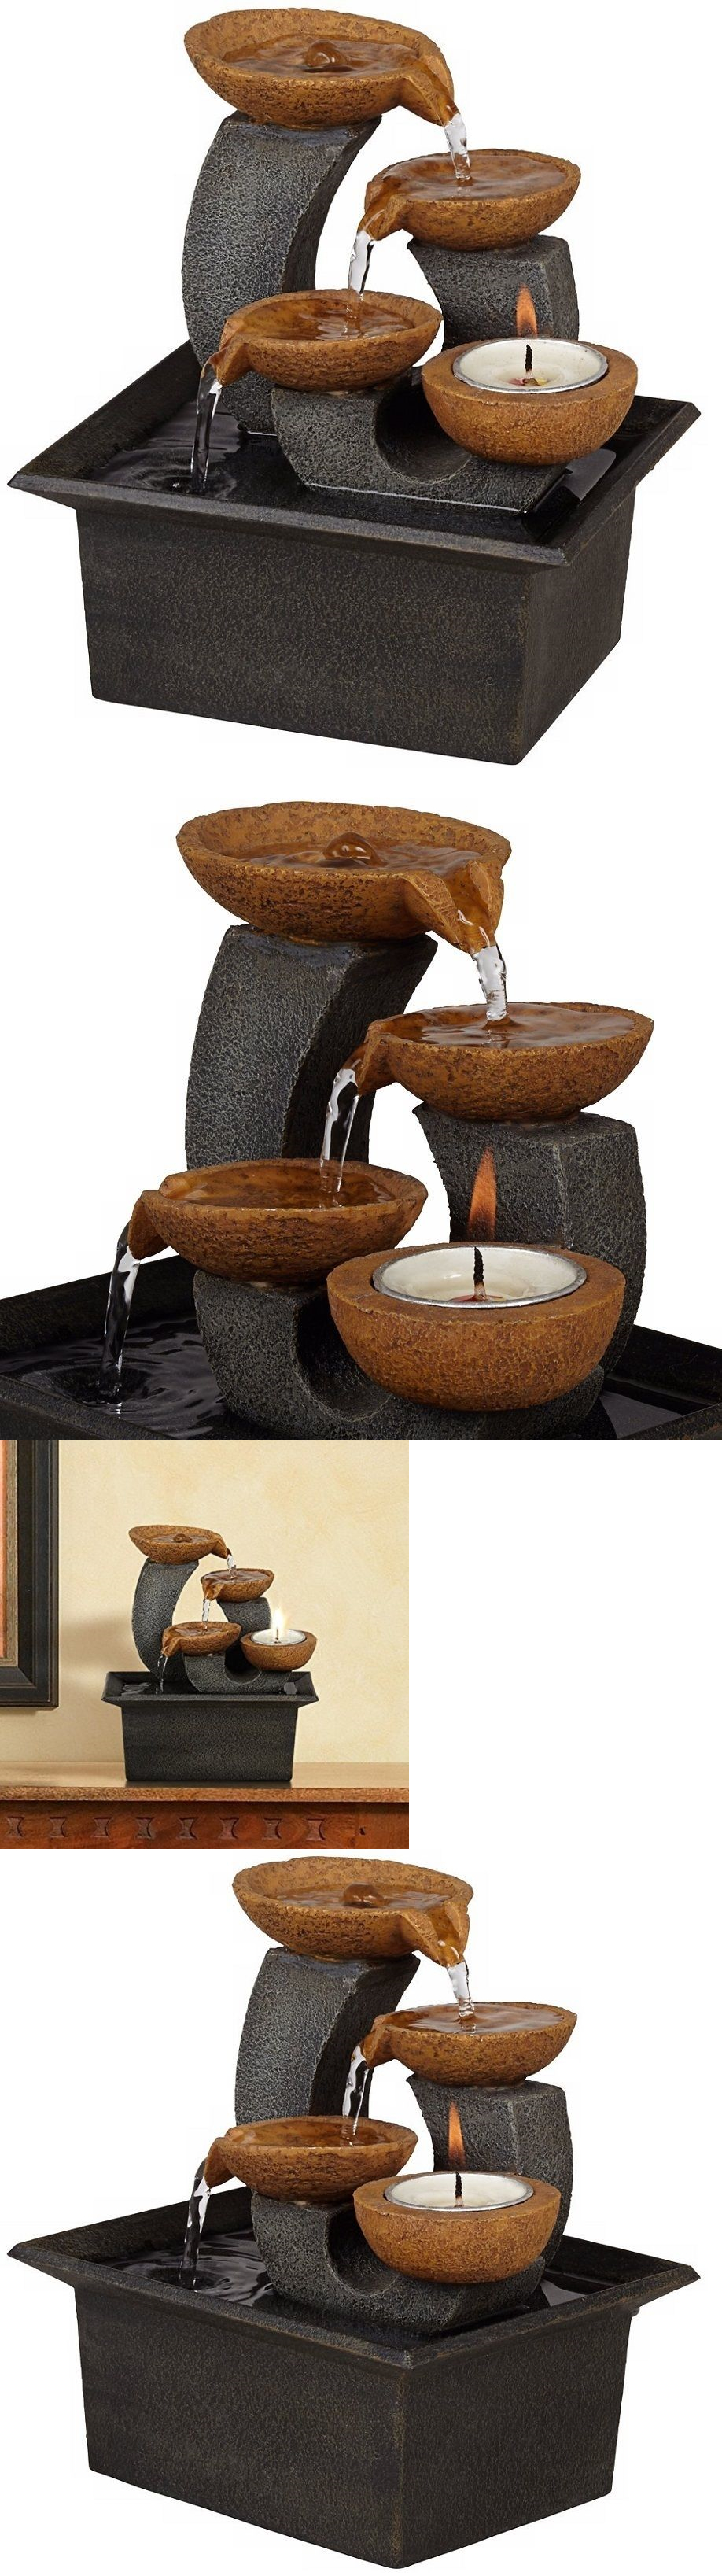 Indoor fountains 20569 water fountain tabletop 7 indoor decor indoor fountains 20569 water fountain tabletop 7 indoor decor cascading relaxation waterfall elegant workwithnaturefo